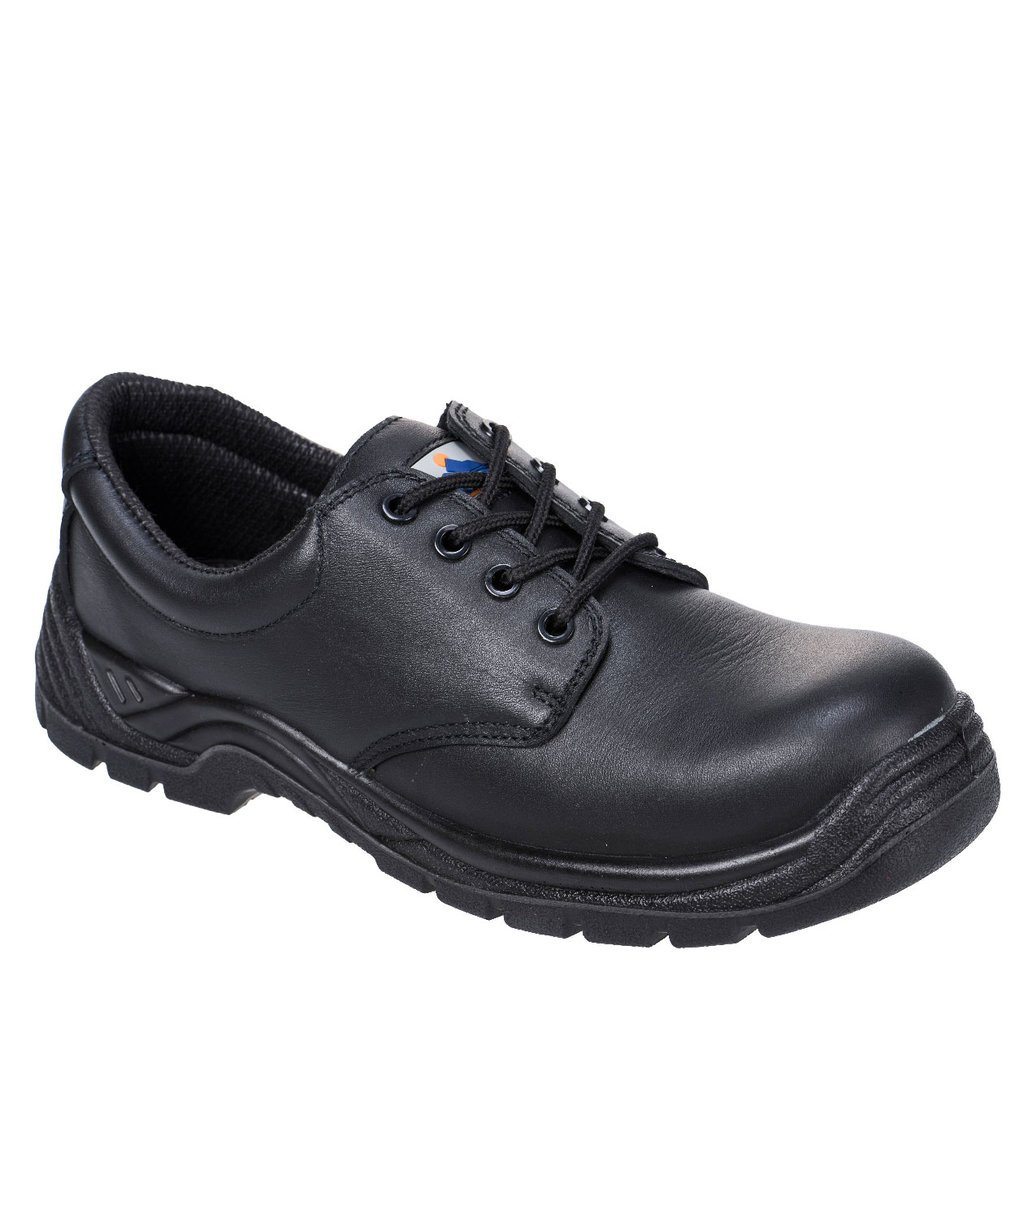 Portwest Compositelite Thor safety shoes S3, Black